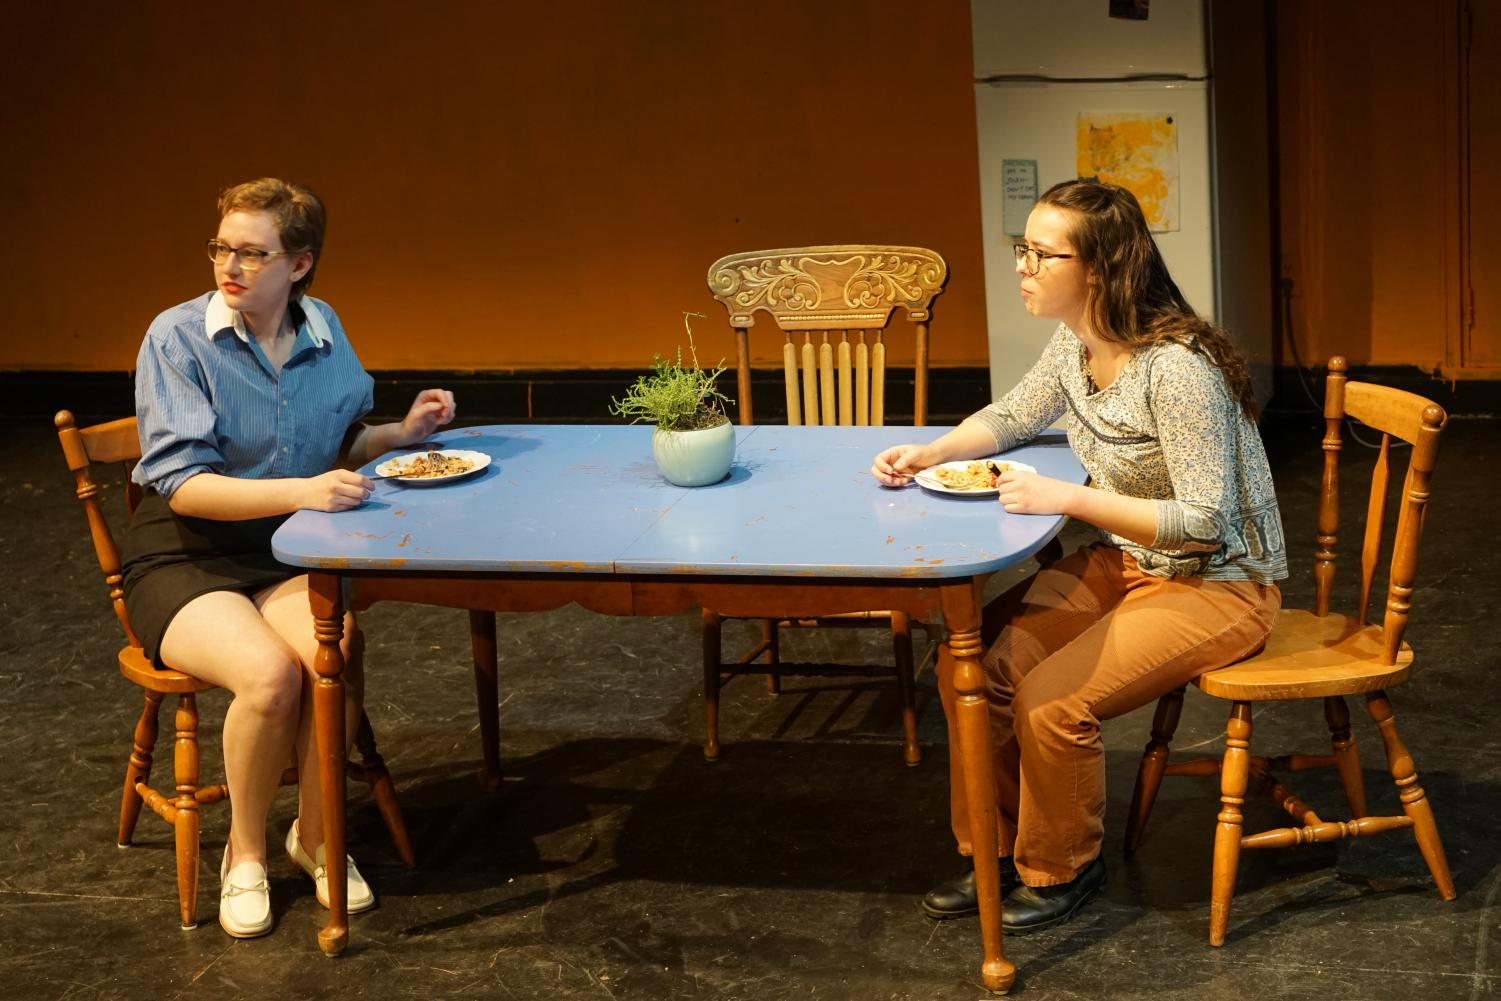 Emmaline (junior Rebecca Perez) and  her daughter Charlotte (junior Devasha Solomon) eat dinner together while discussing Charlotte's upcoming birthday in Kids on the Sidewalk.